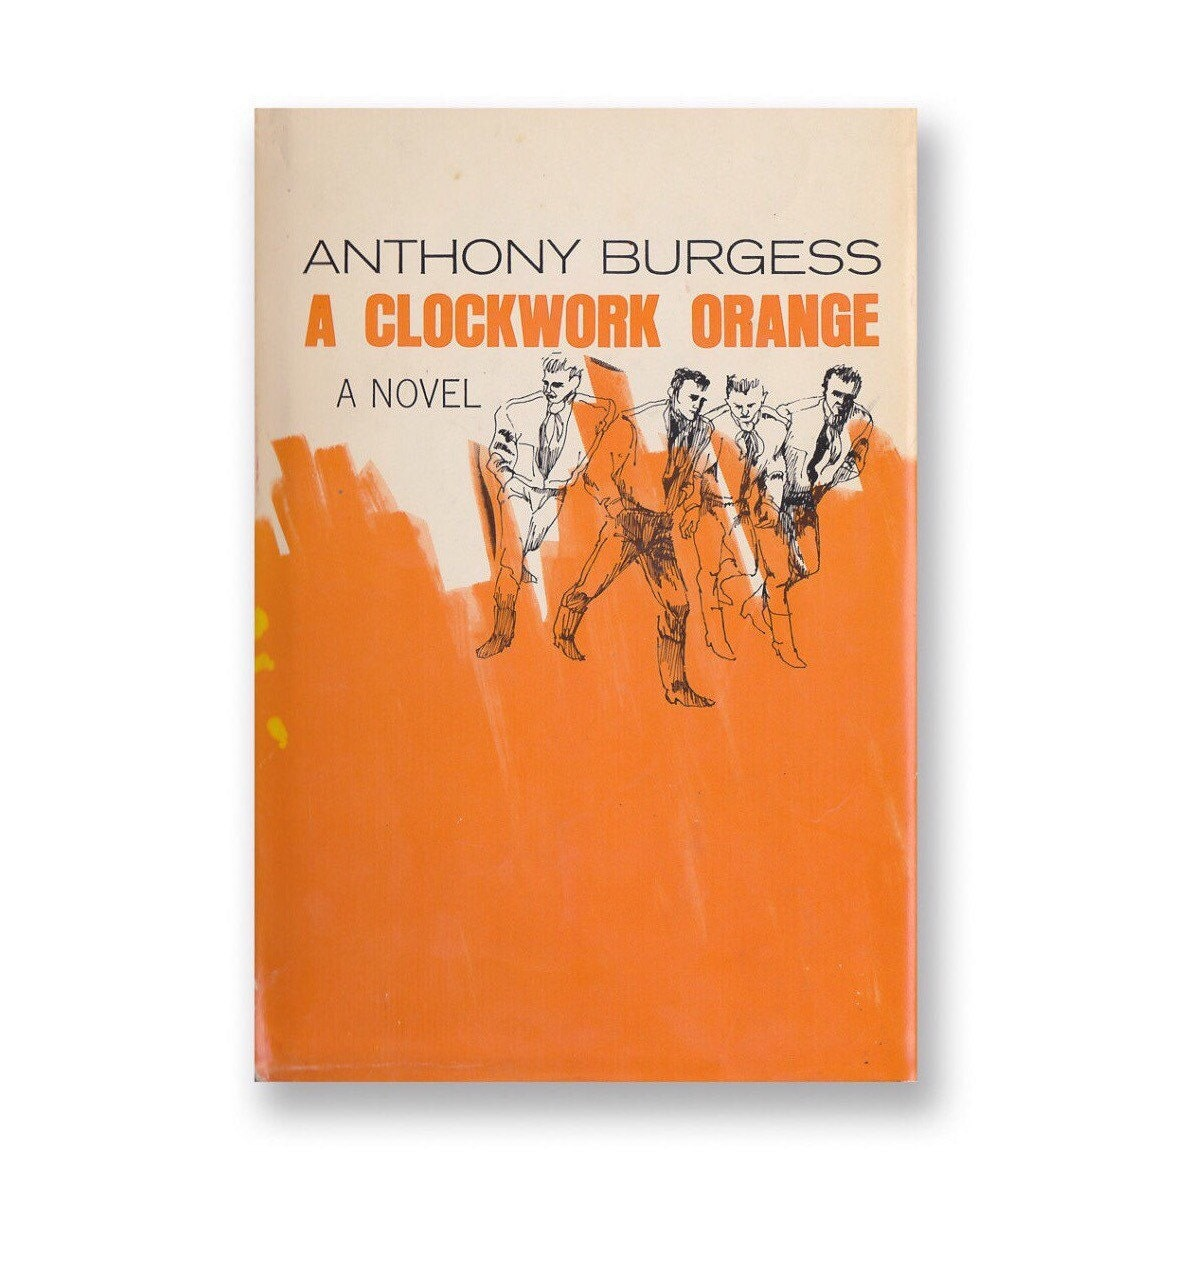 a novel review of anthony burgess the clockwork orange Click to read more about a clockwork orange by anthony burgess edit new york review of books is a dystopian novel by anthony burgess.